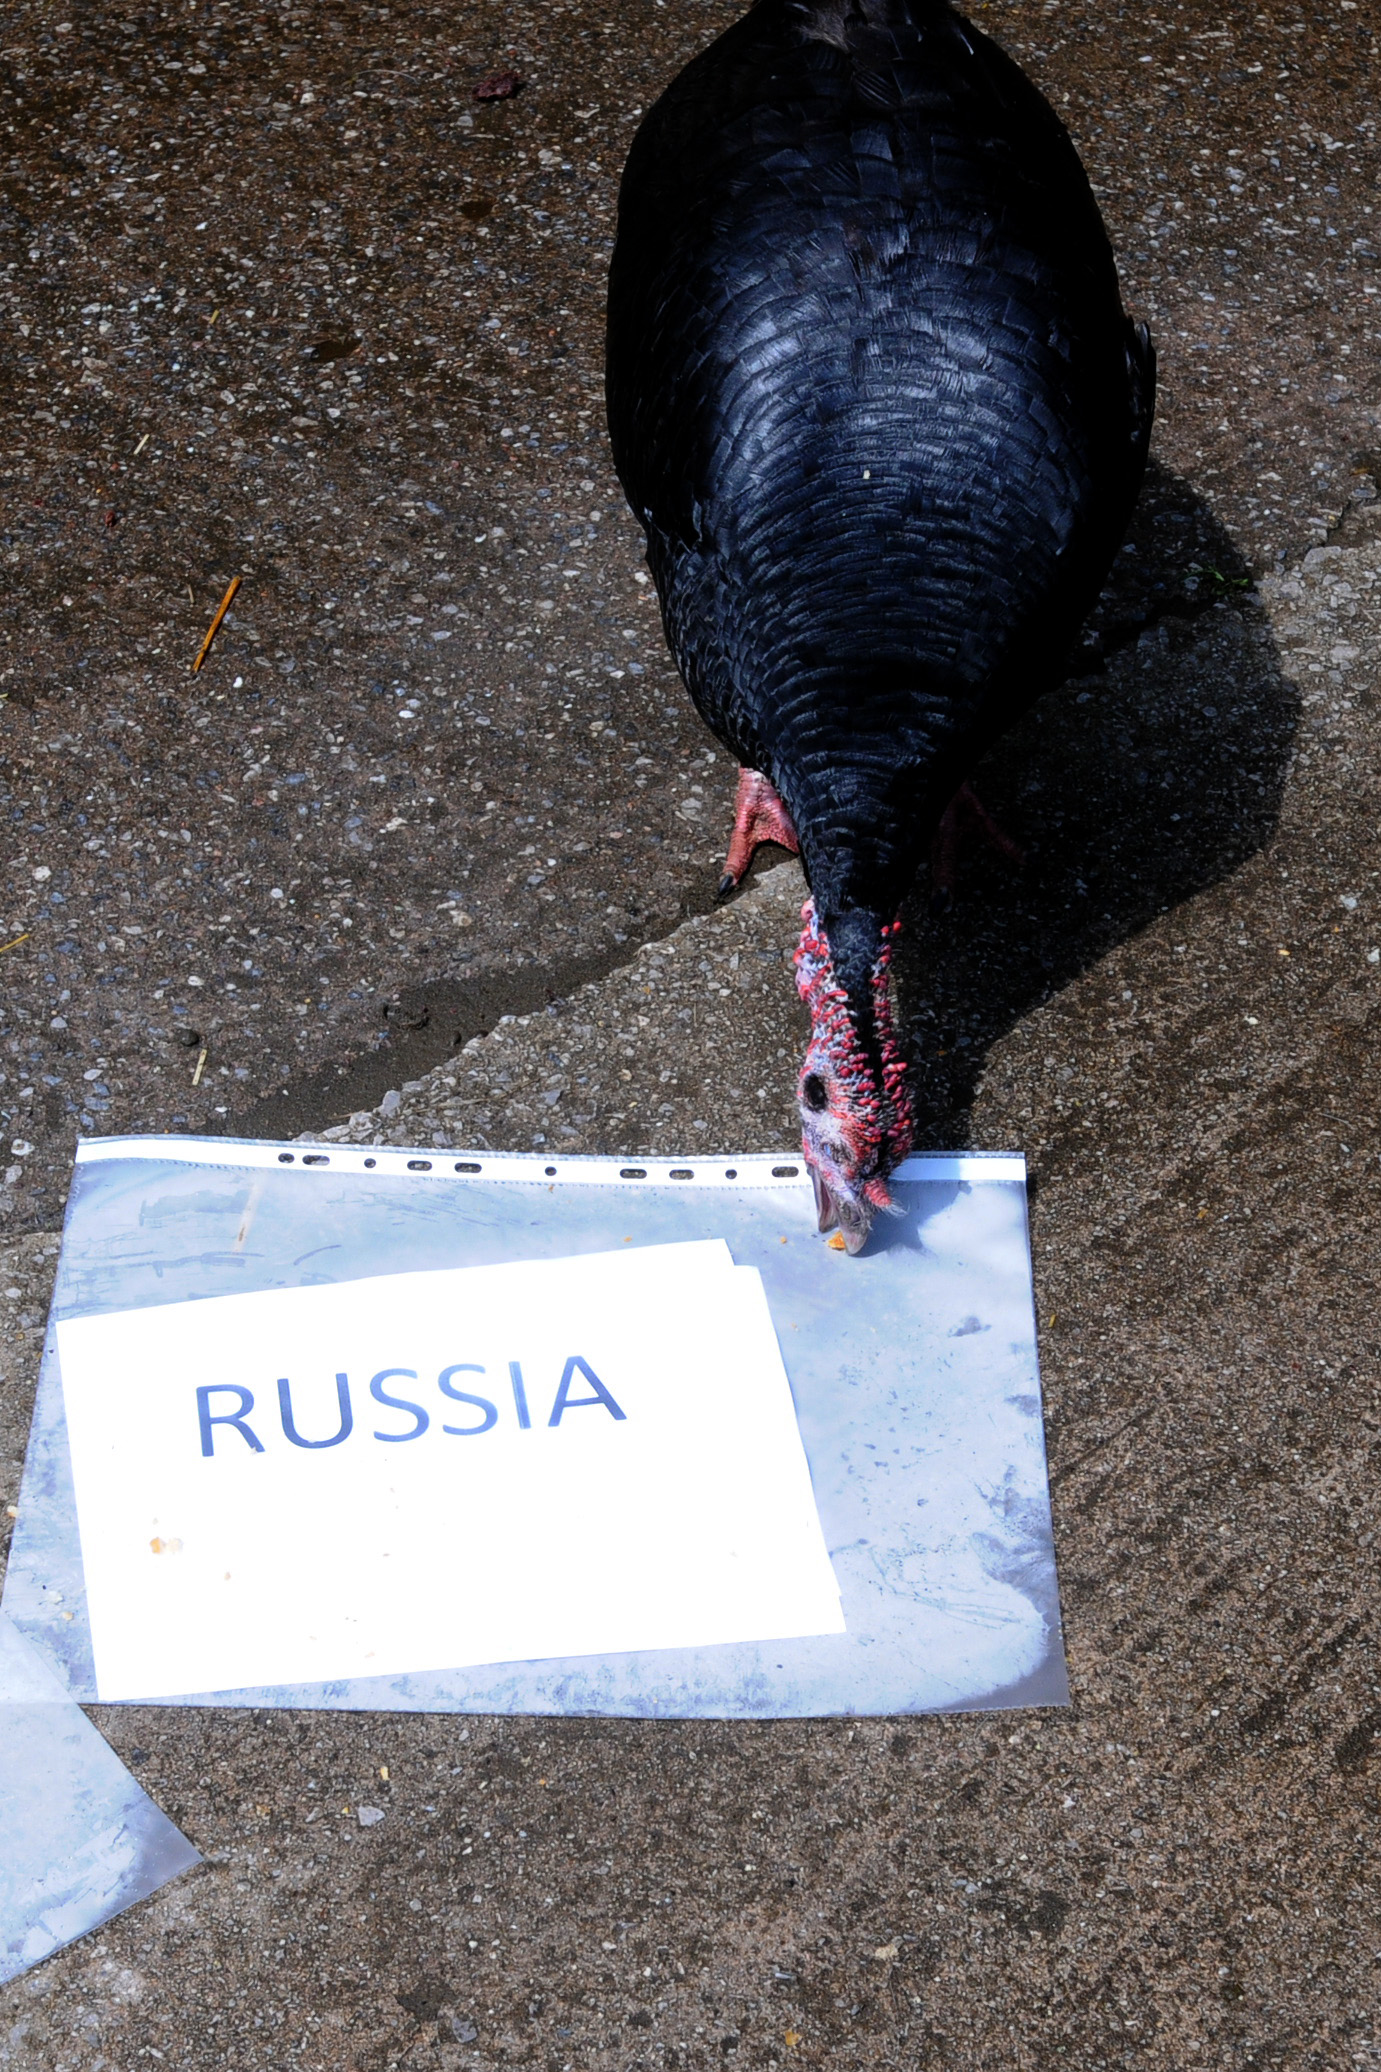 Margaret pecking out Russia